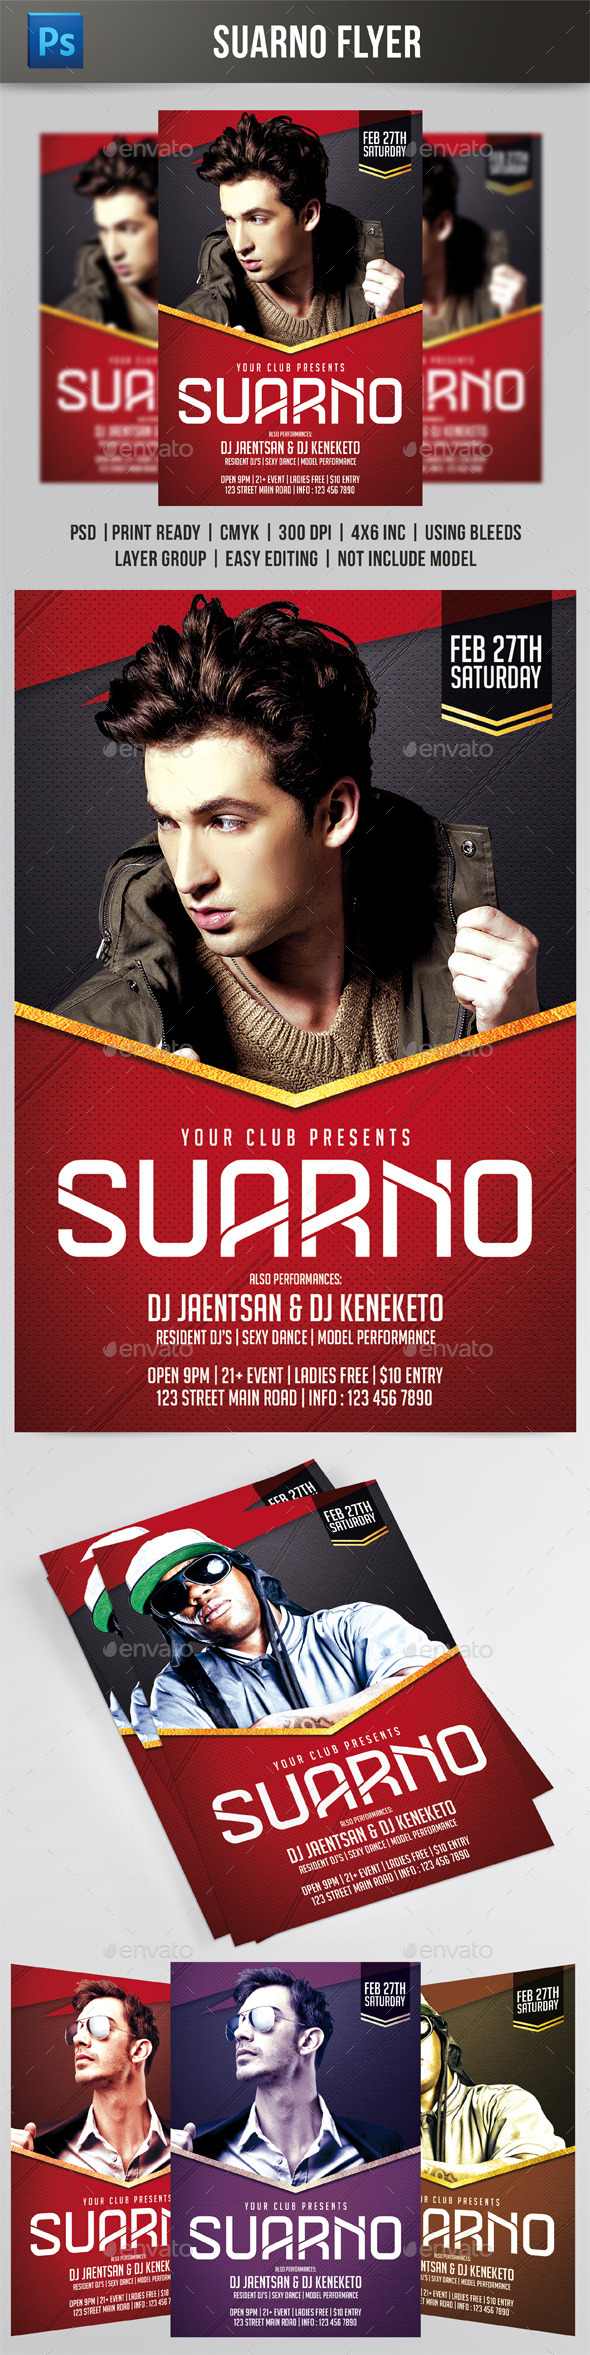 Suarno Flyer - Events Flyers